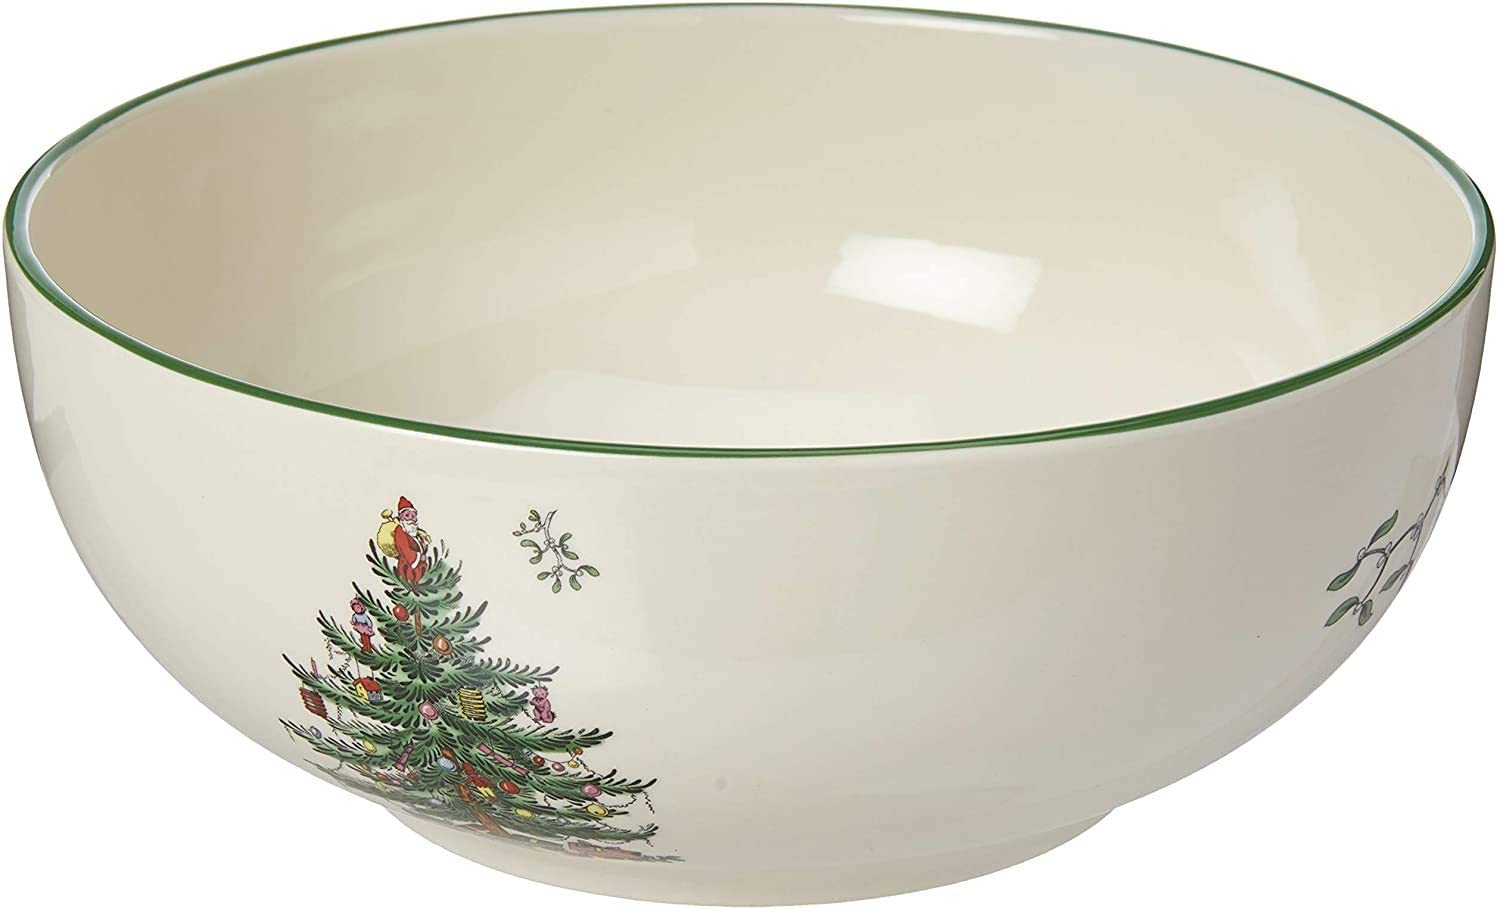 Spode Christmas Tree Round Bowl Fine Porcelain Kitchen Dining